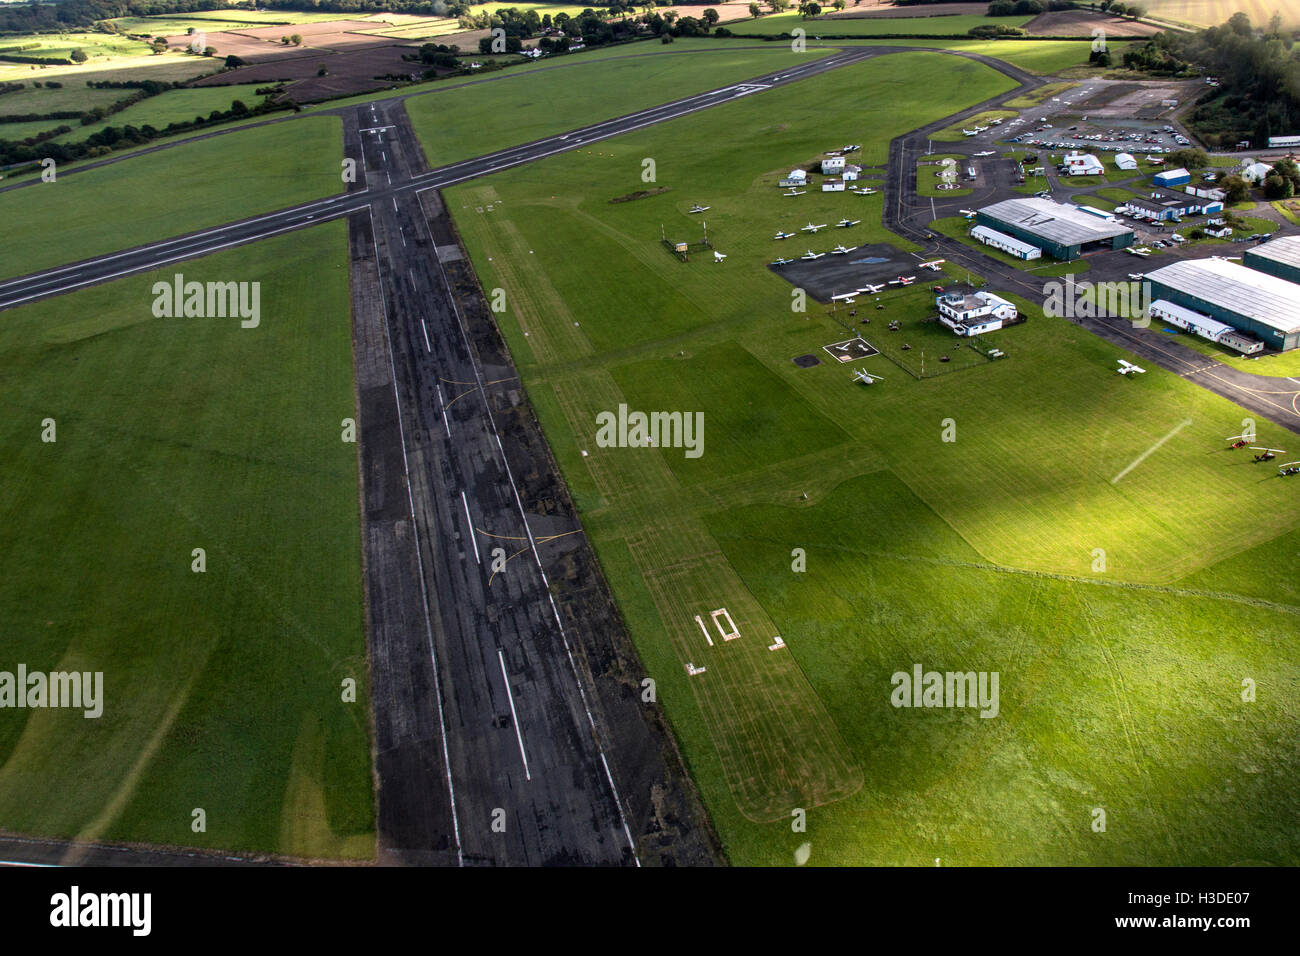 Wolverhampton Halfpenny Green in South Staffordshire, England. Aerial view showing runway, hangars and light aircraft. - Stock Image